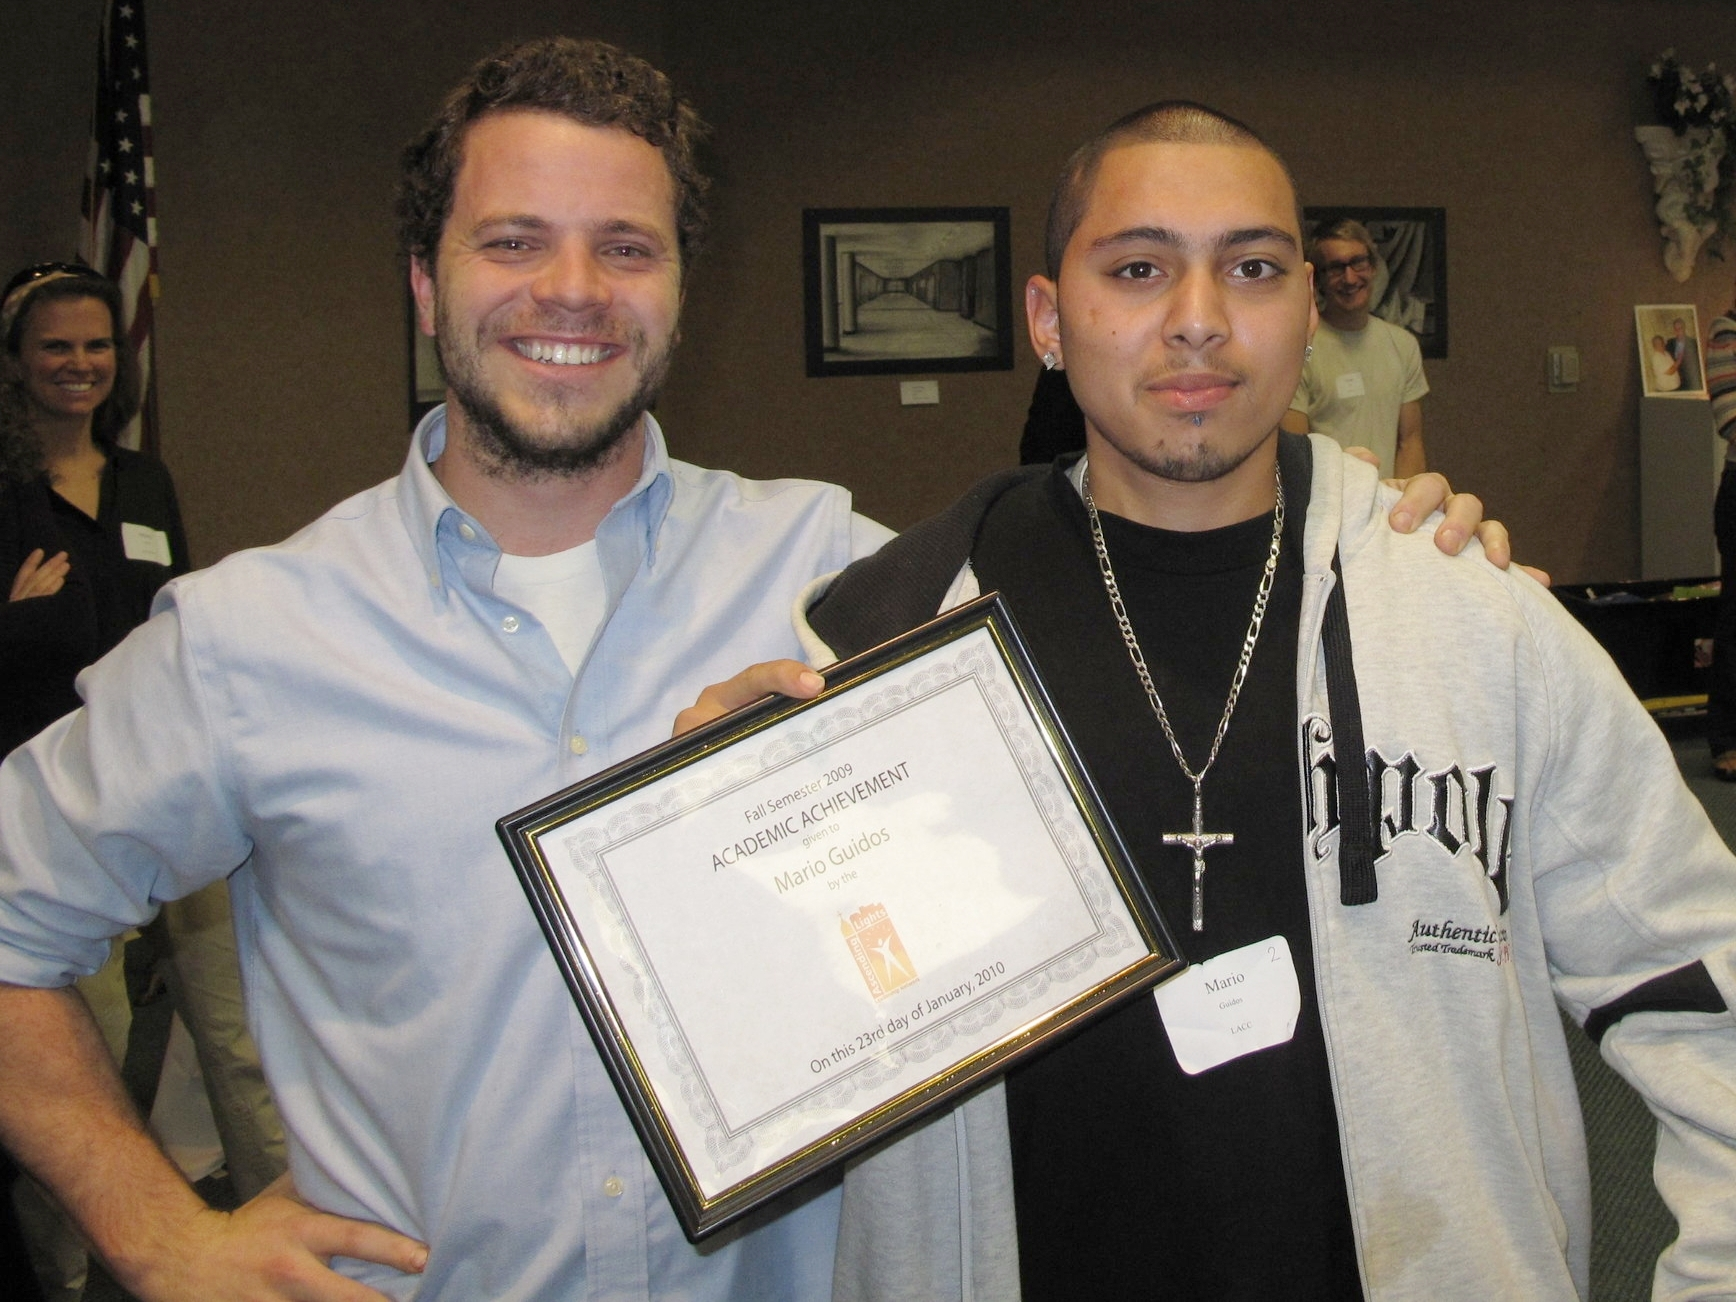 Mario Guidos (right) of Saint Michael's Catholic Church receives an academic achievement award from his mentor, 2009